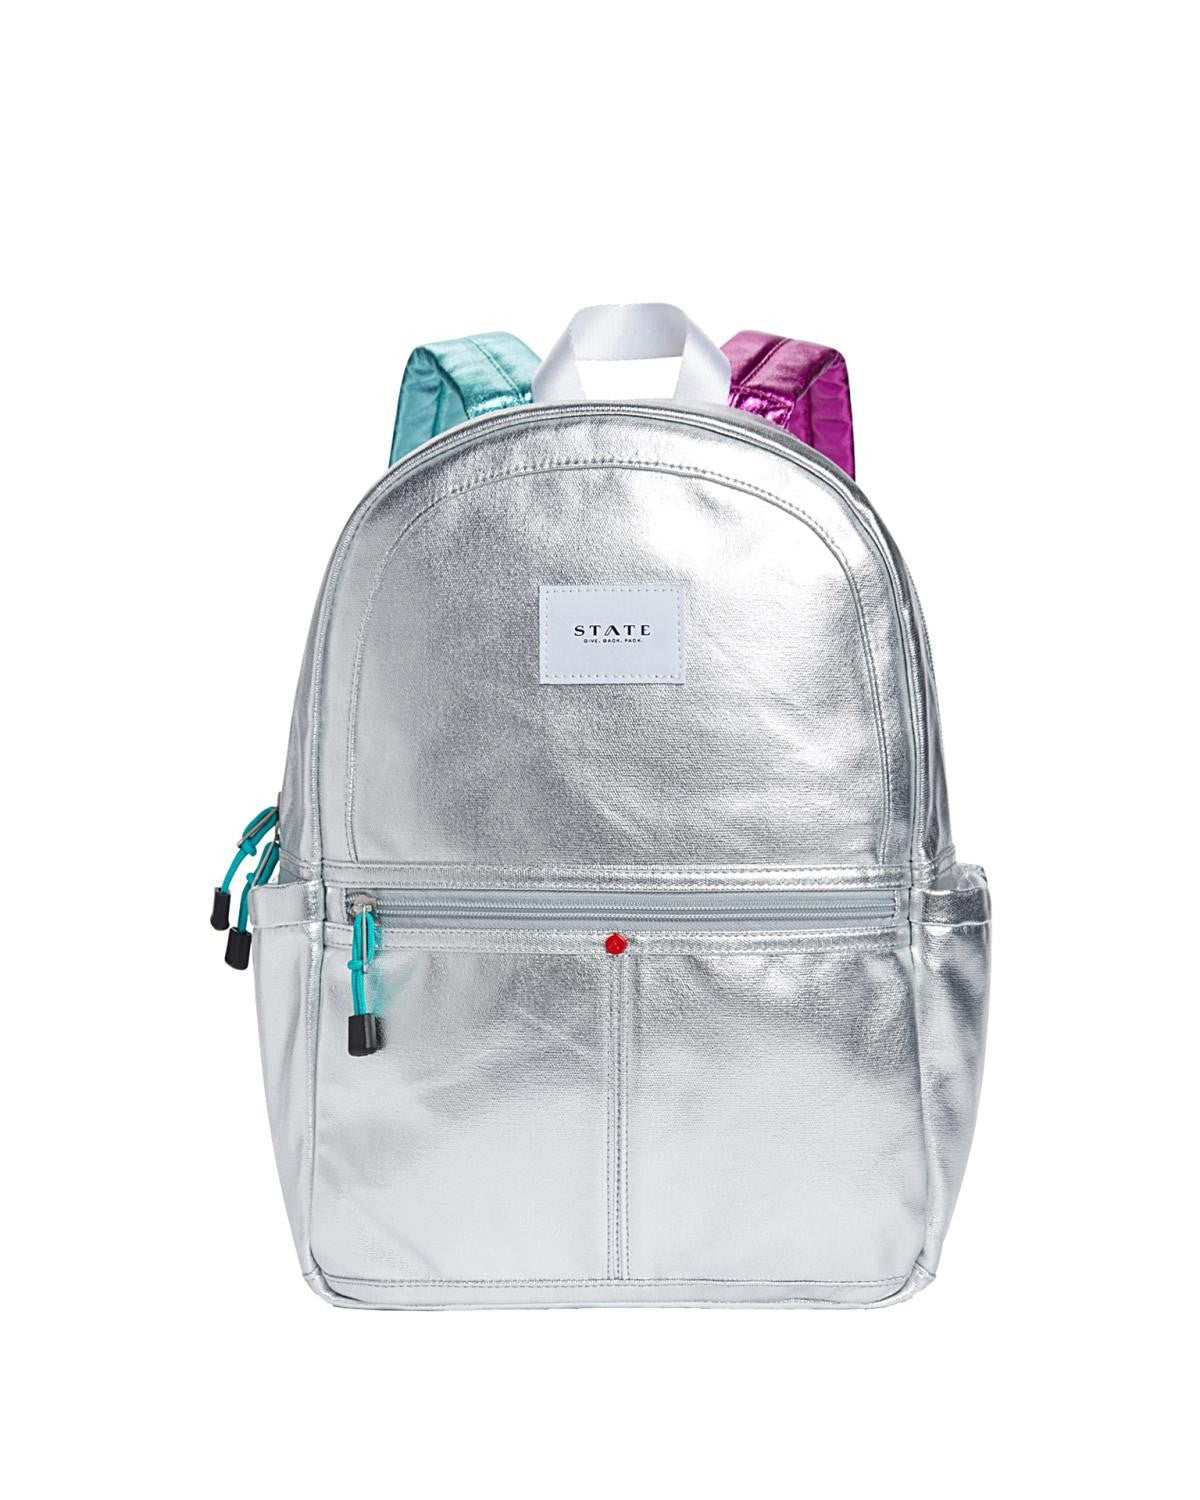 State Bags Kane Backpack in Silver Multi